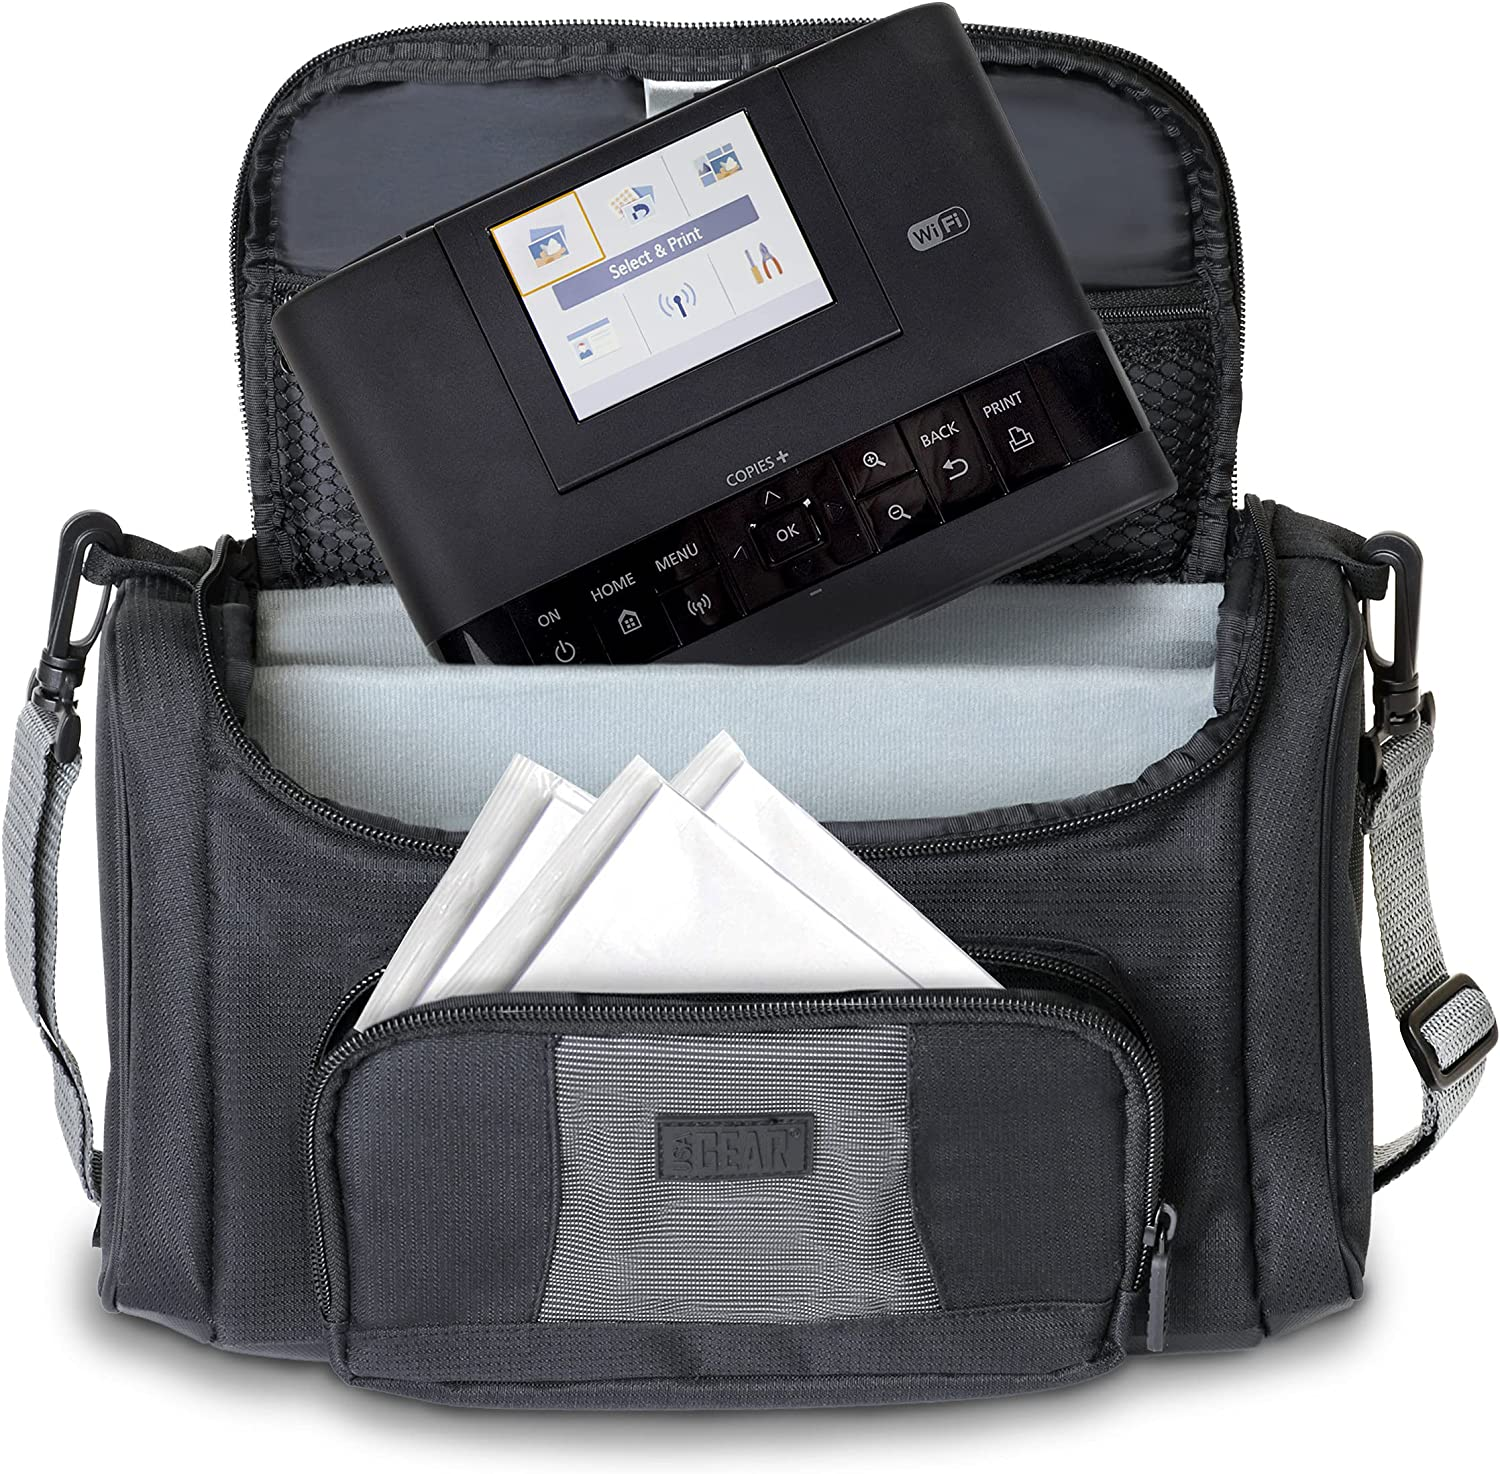 USA Gear Portable Photo Printer Case - Portable Printer Bag with Accessory Pockets, Adjustable Dividers, & Shoulder Strap - Compatible with Canon Selphy CP1200 Wireless Color Photo Printer - Black